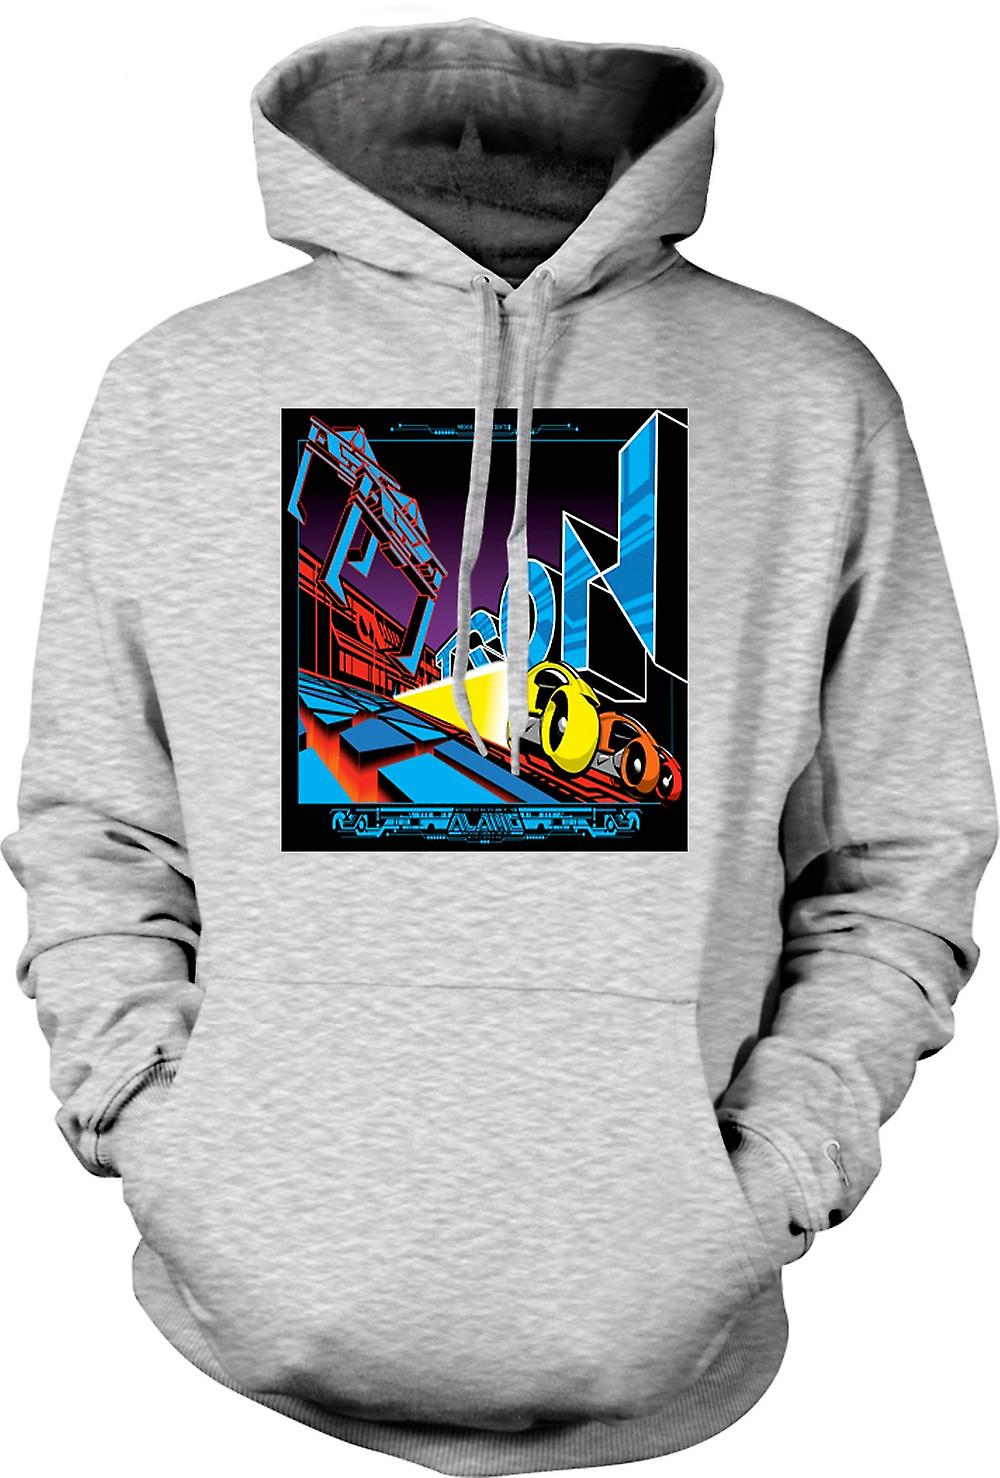 Mens Hoodie - Tron - Pop-Art - Cool B-Movie